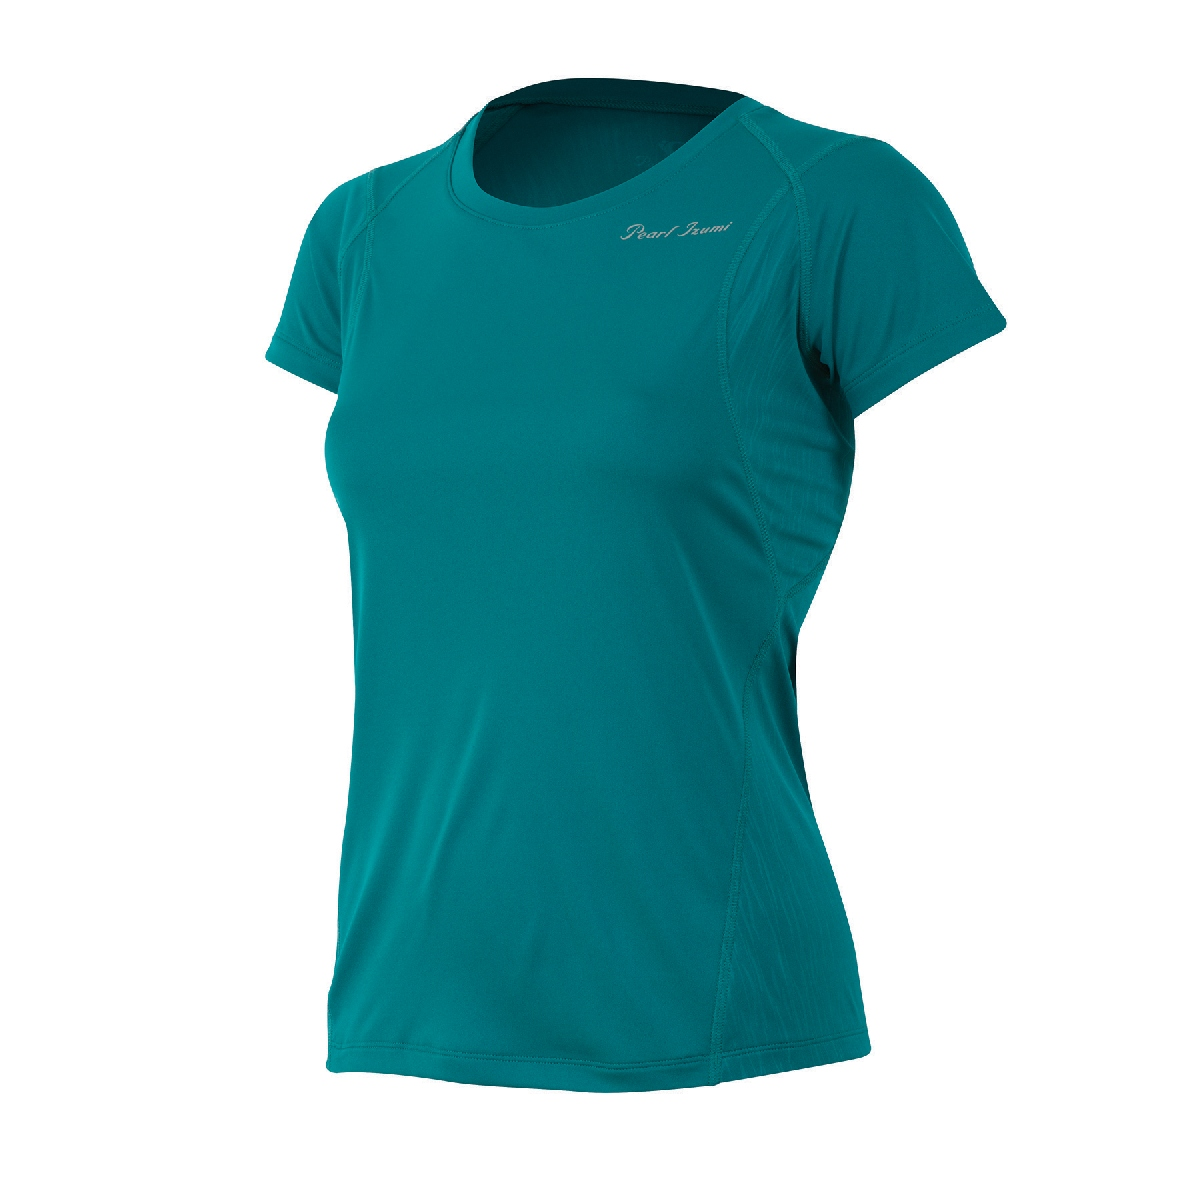 Pearl Izumi Fly Short Sleeve Running Top Women's Size L DeepLake U.S.A. & Canada